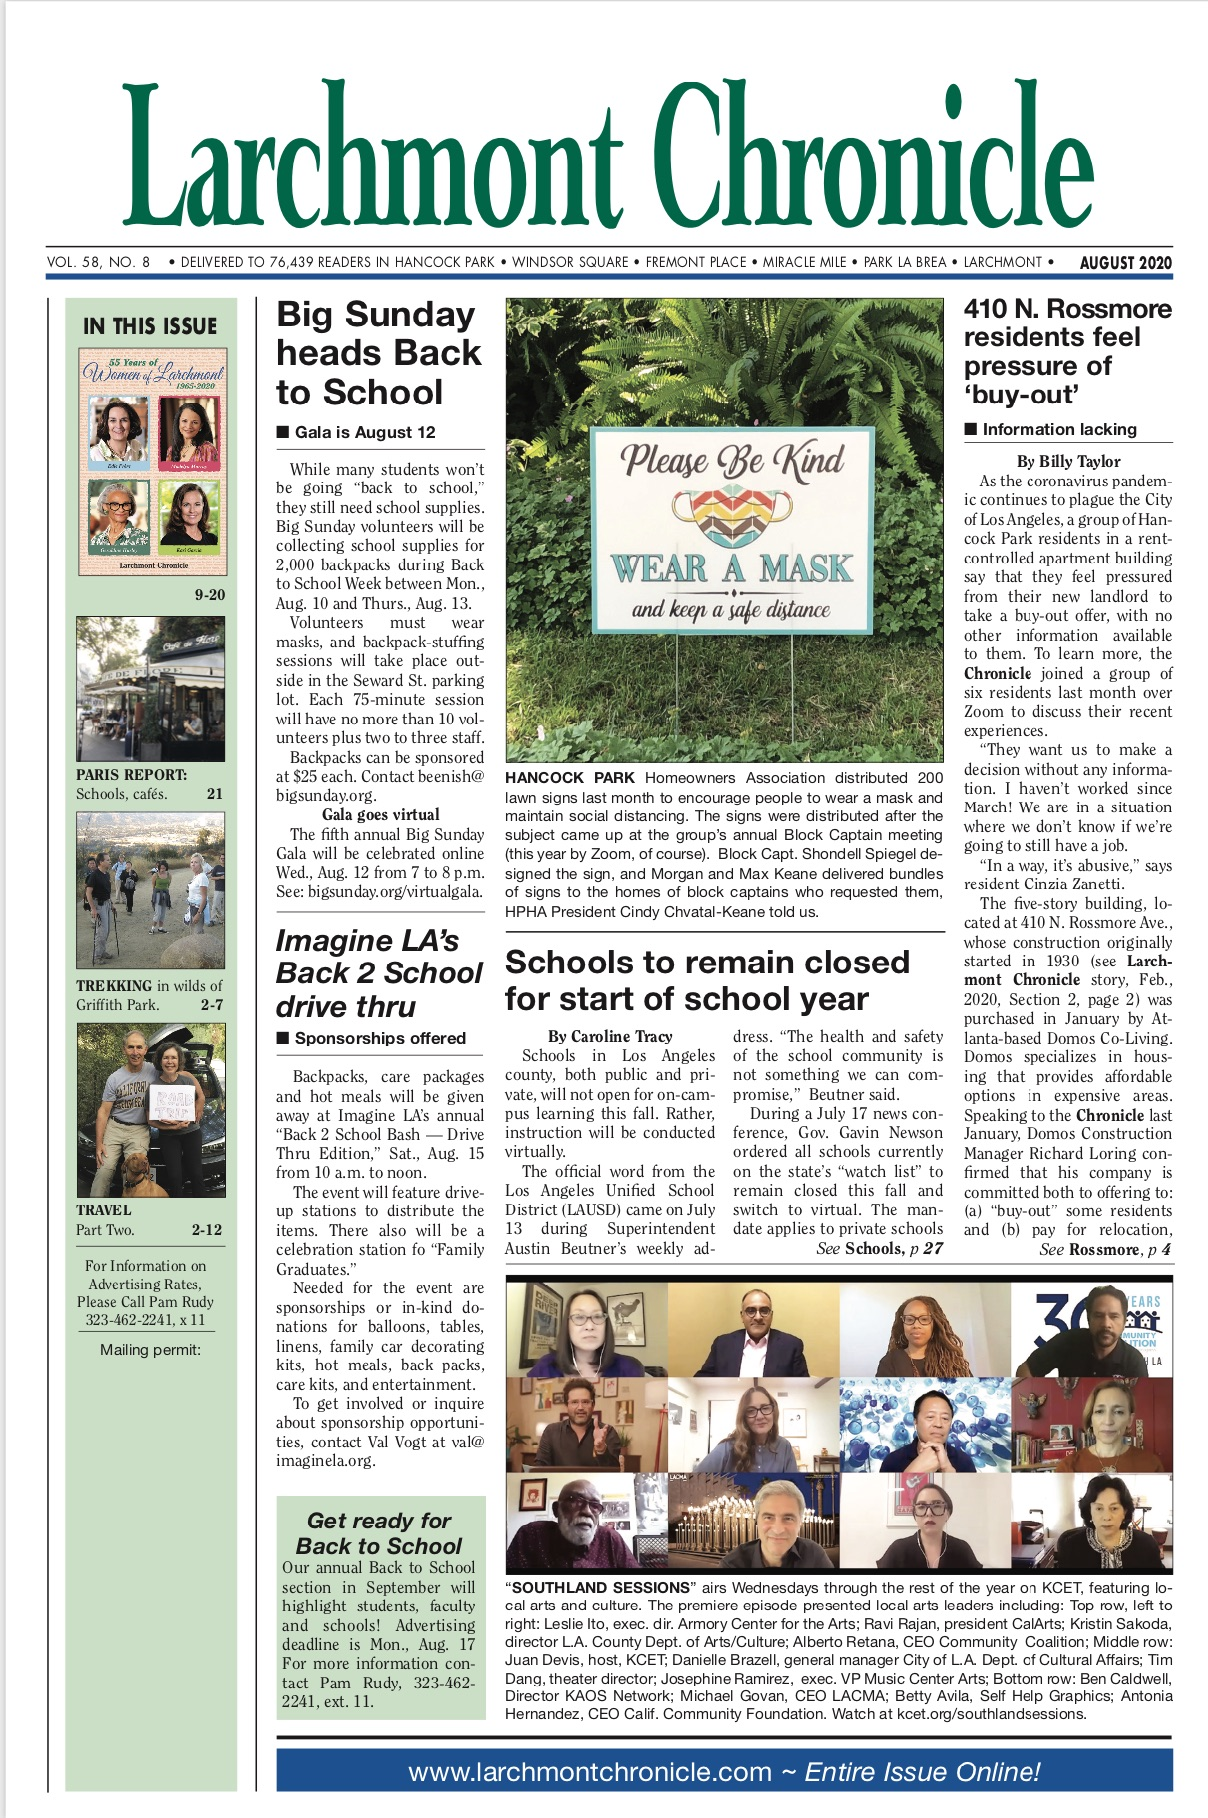 Larchmont Chronicle August 2020 full issue